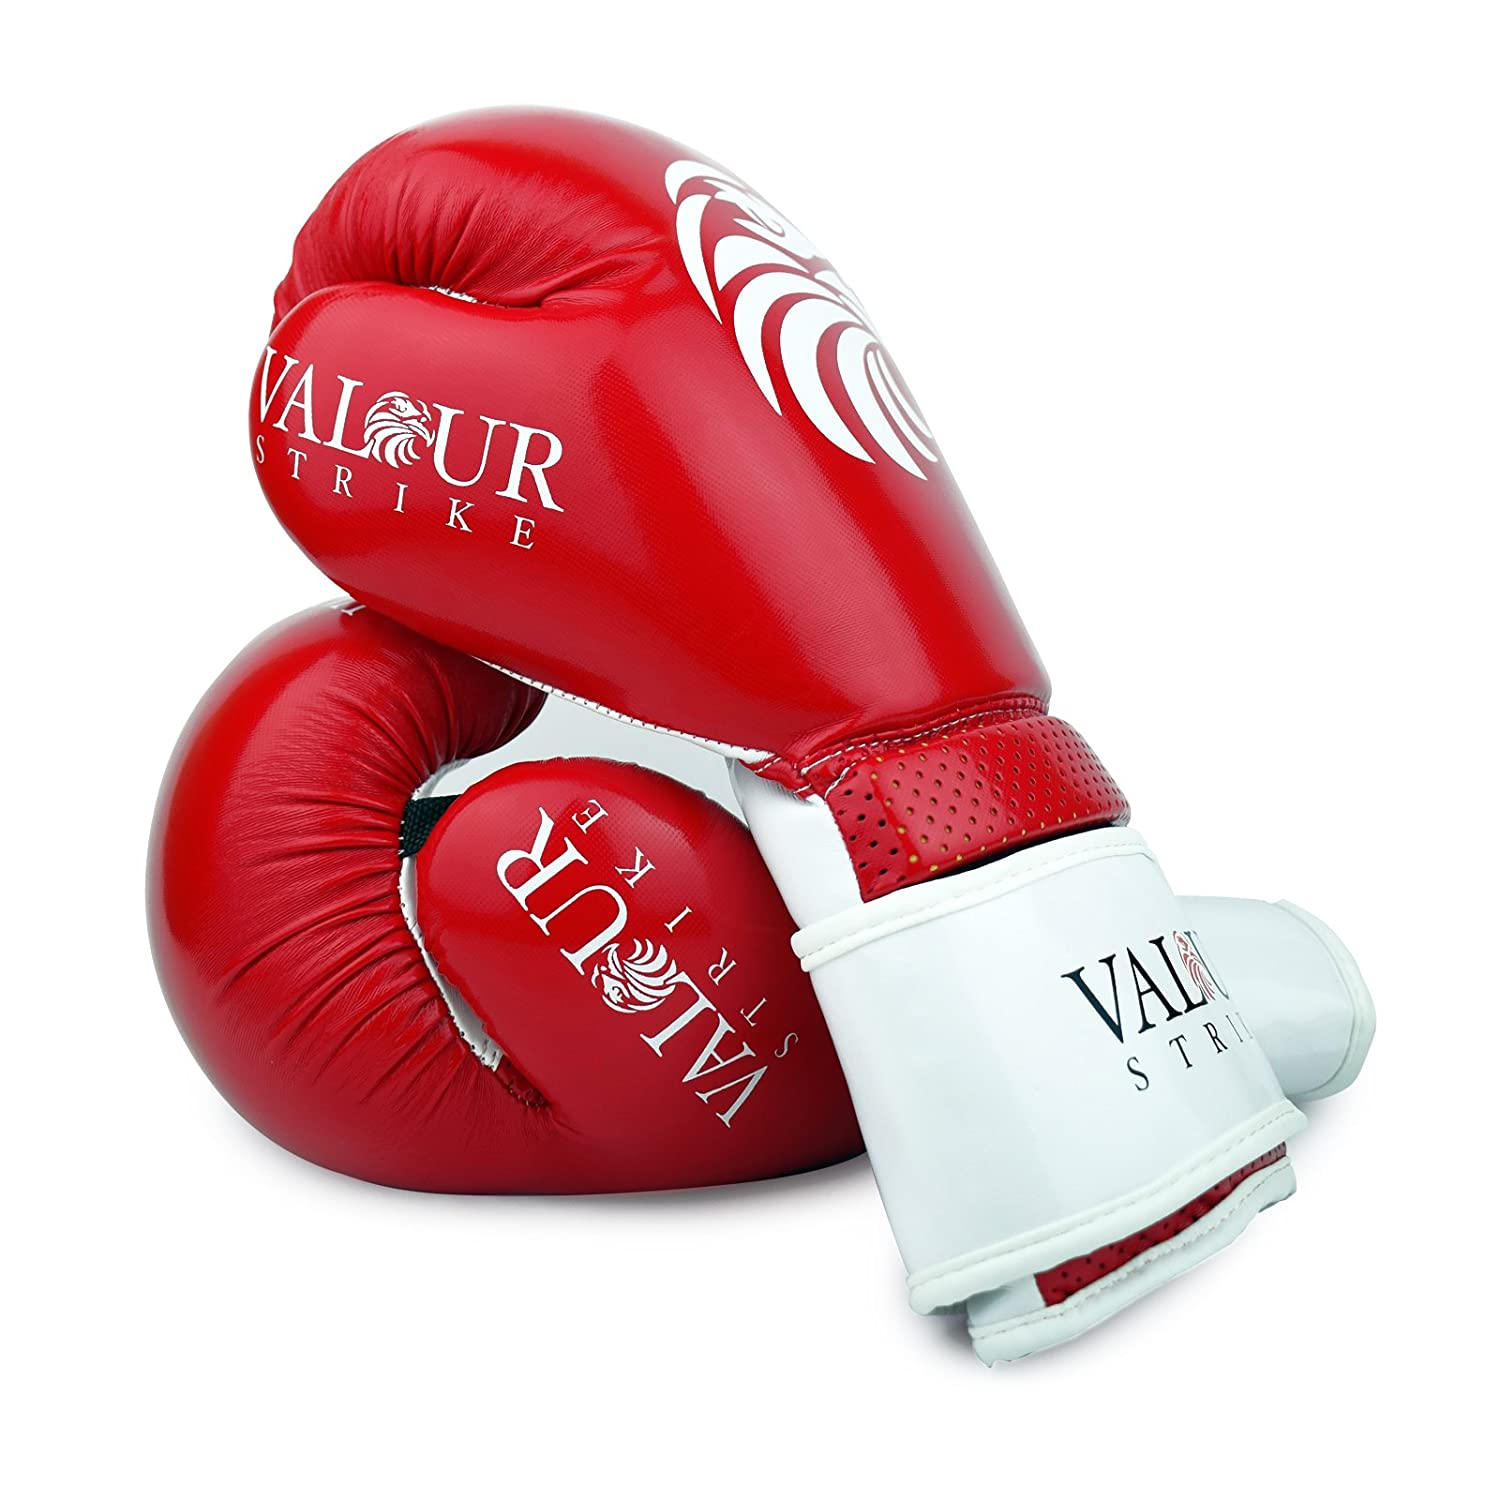 16oz Punch Bag Sparring Fight MMA Muay Thai Grappling Fight Mitts Martial Arts Training Kickboxing Punching Glove ★ Valour Strike Red Paw Boxing Gloves ★ 4oz